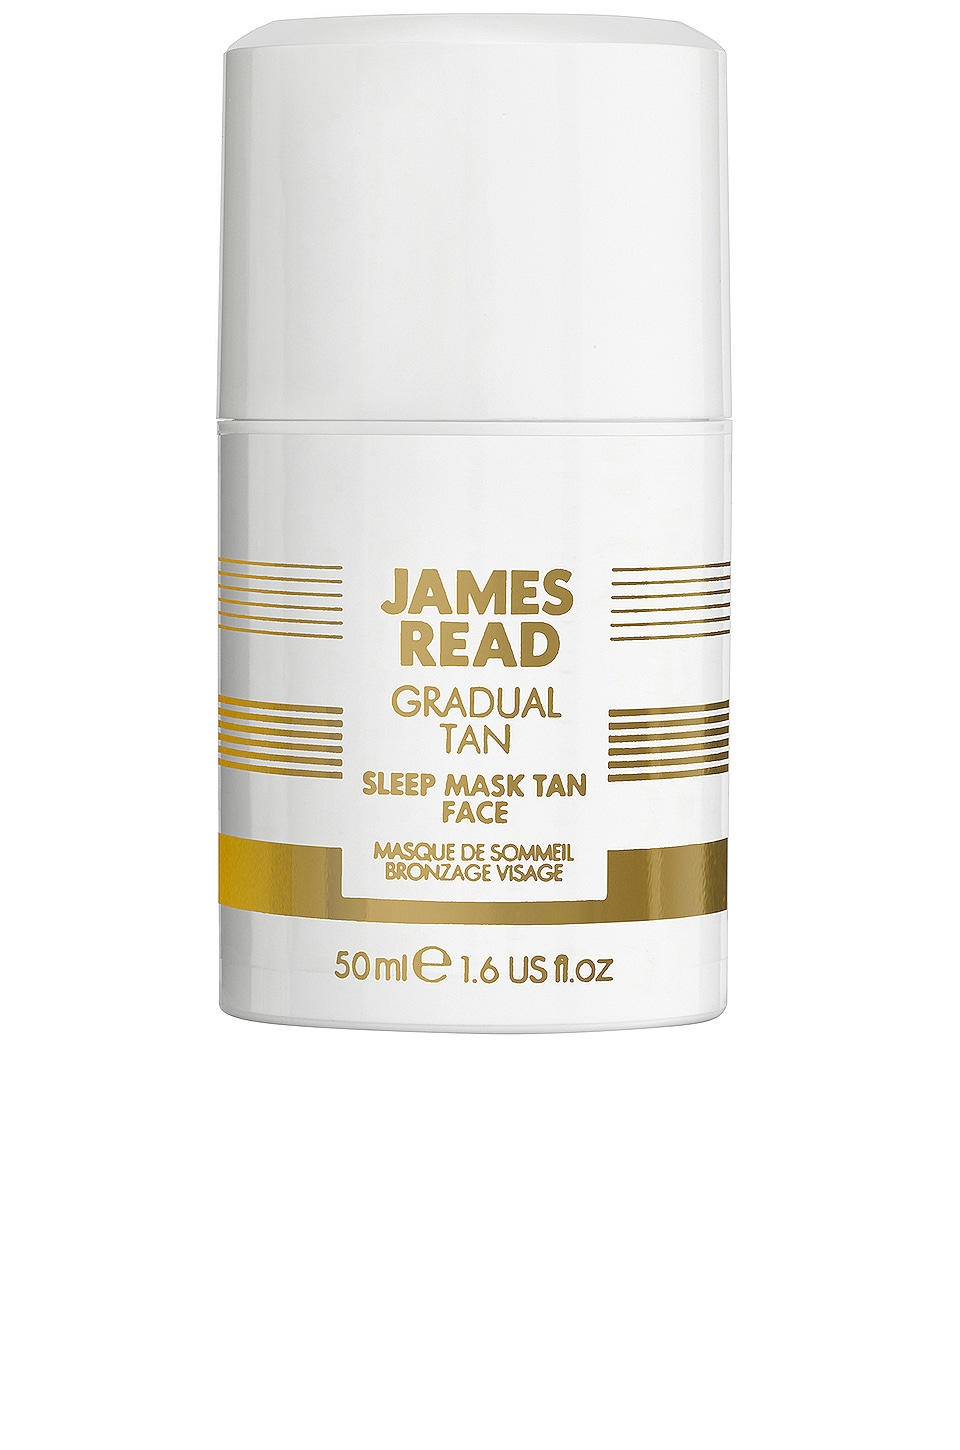 James Read Tan Gradual Tan Sleep Mask Face